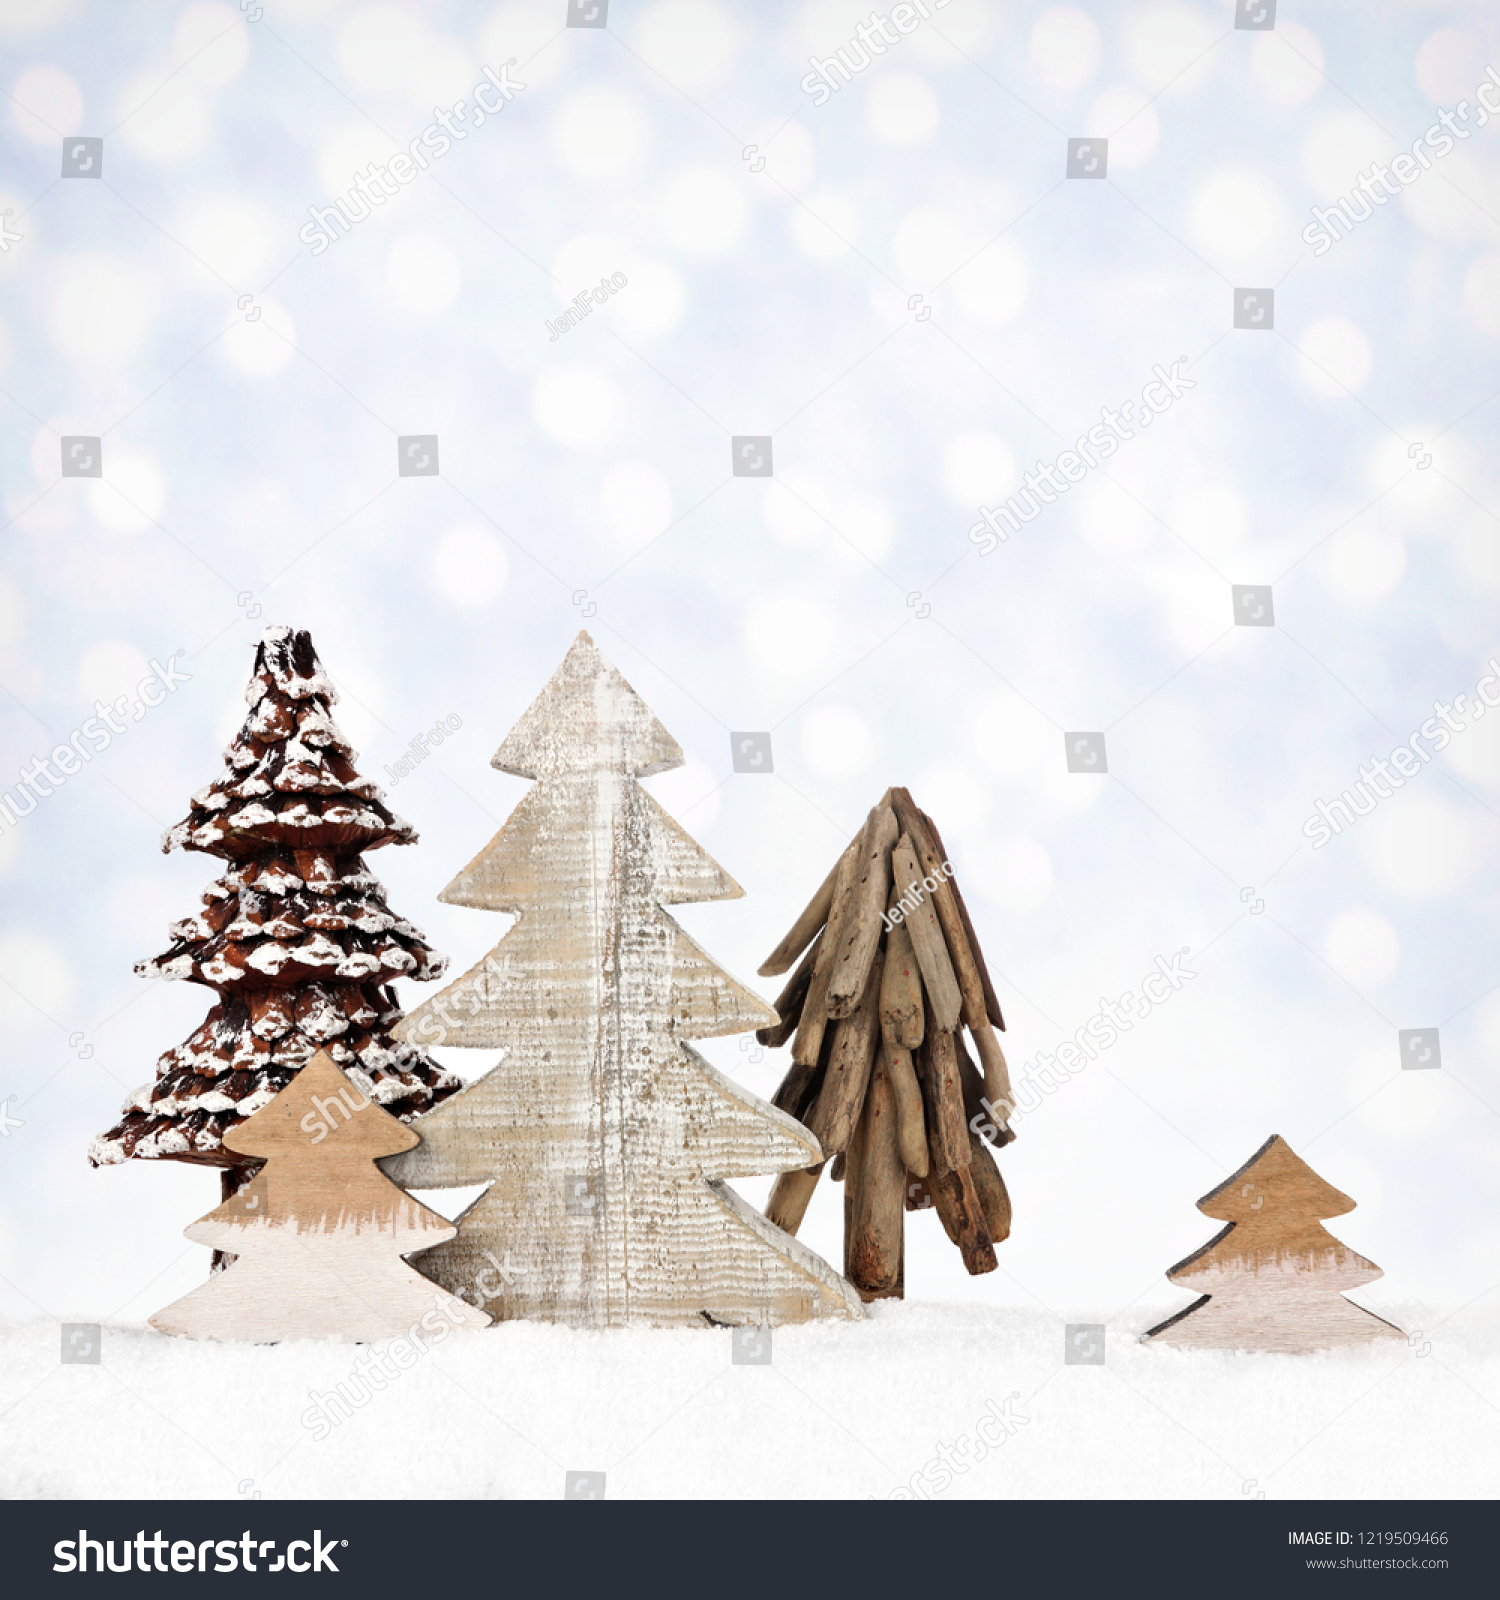 Group Rustic Wooden Christmas Tree Decorations Stock Photo Edit Now 1219509466